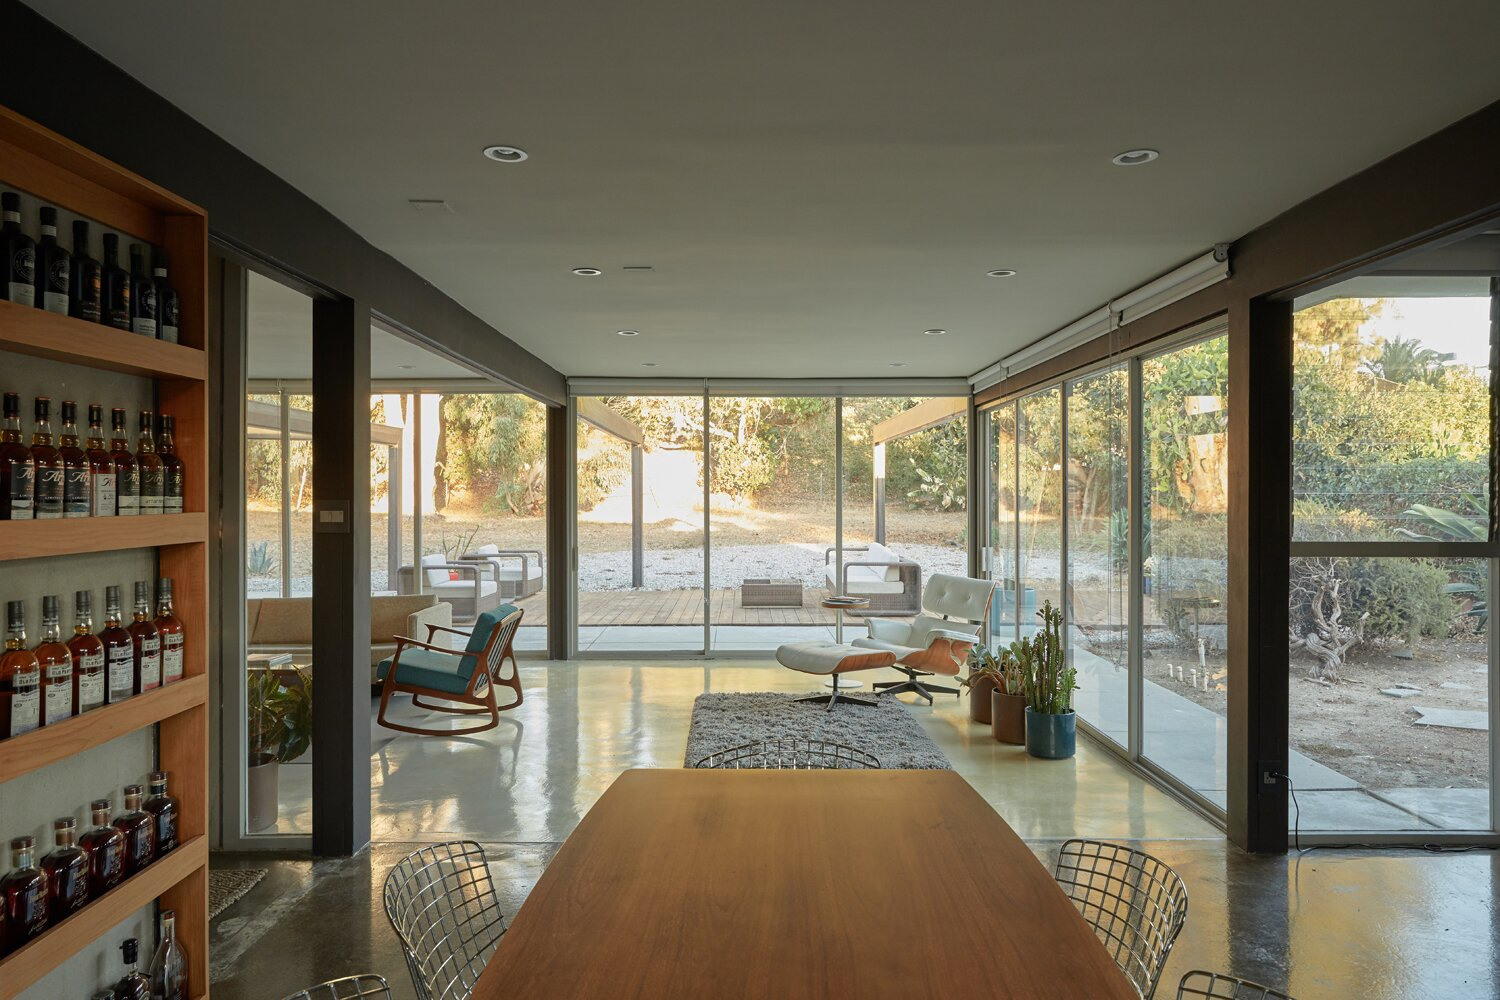 Dining area of Whittier Midcentury Home